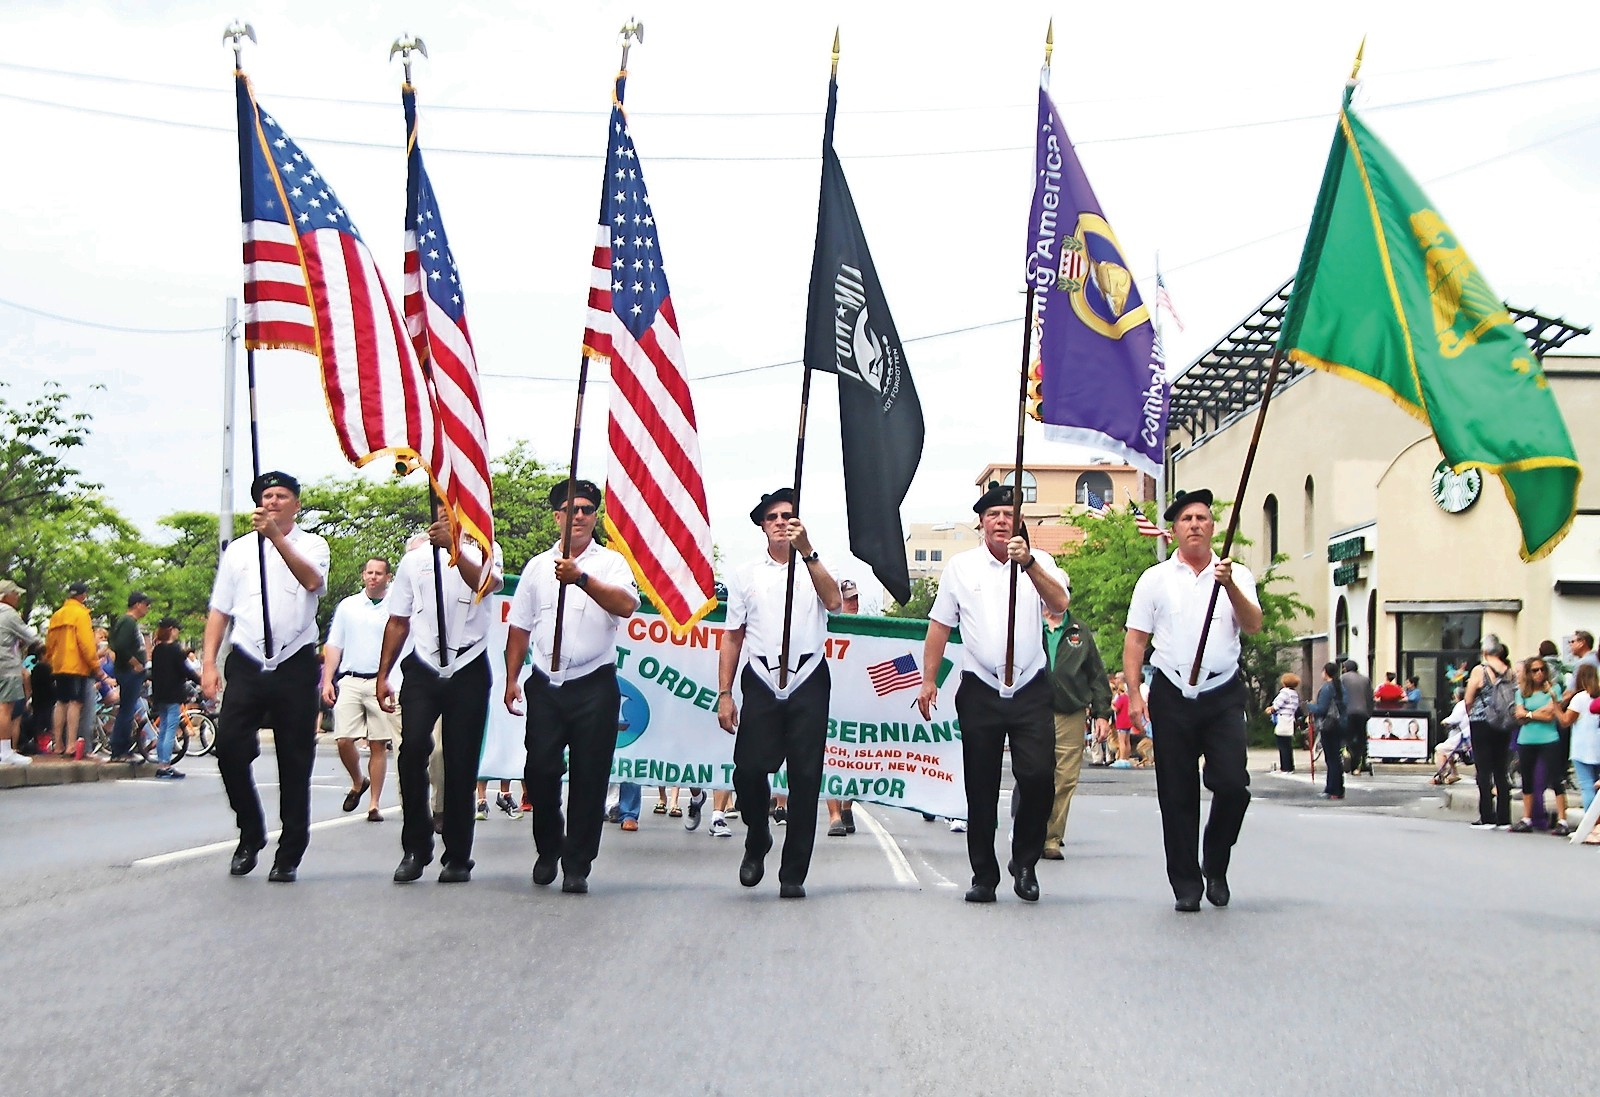 The City of Long Beach will pay tribute to veterans with the annual Memorial Day Parade on Monday, May 29. The parade begins at Ohio Avenue and West Beech Street at 10 a.m. and ends at the reviewing stand on Park Avenue in front of City Hall. The American Legion and Veterans of Foreign Wars will be joined by city, county and state officials.